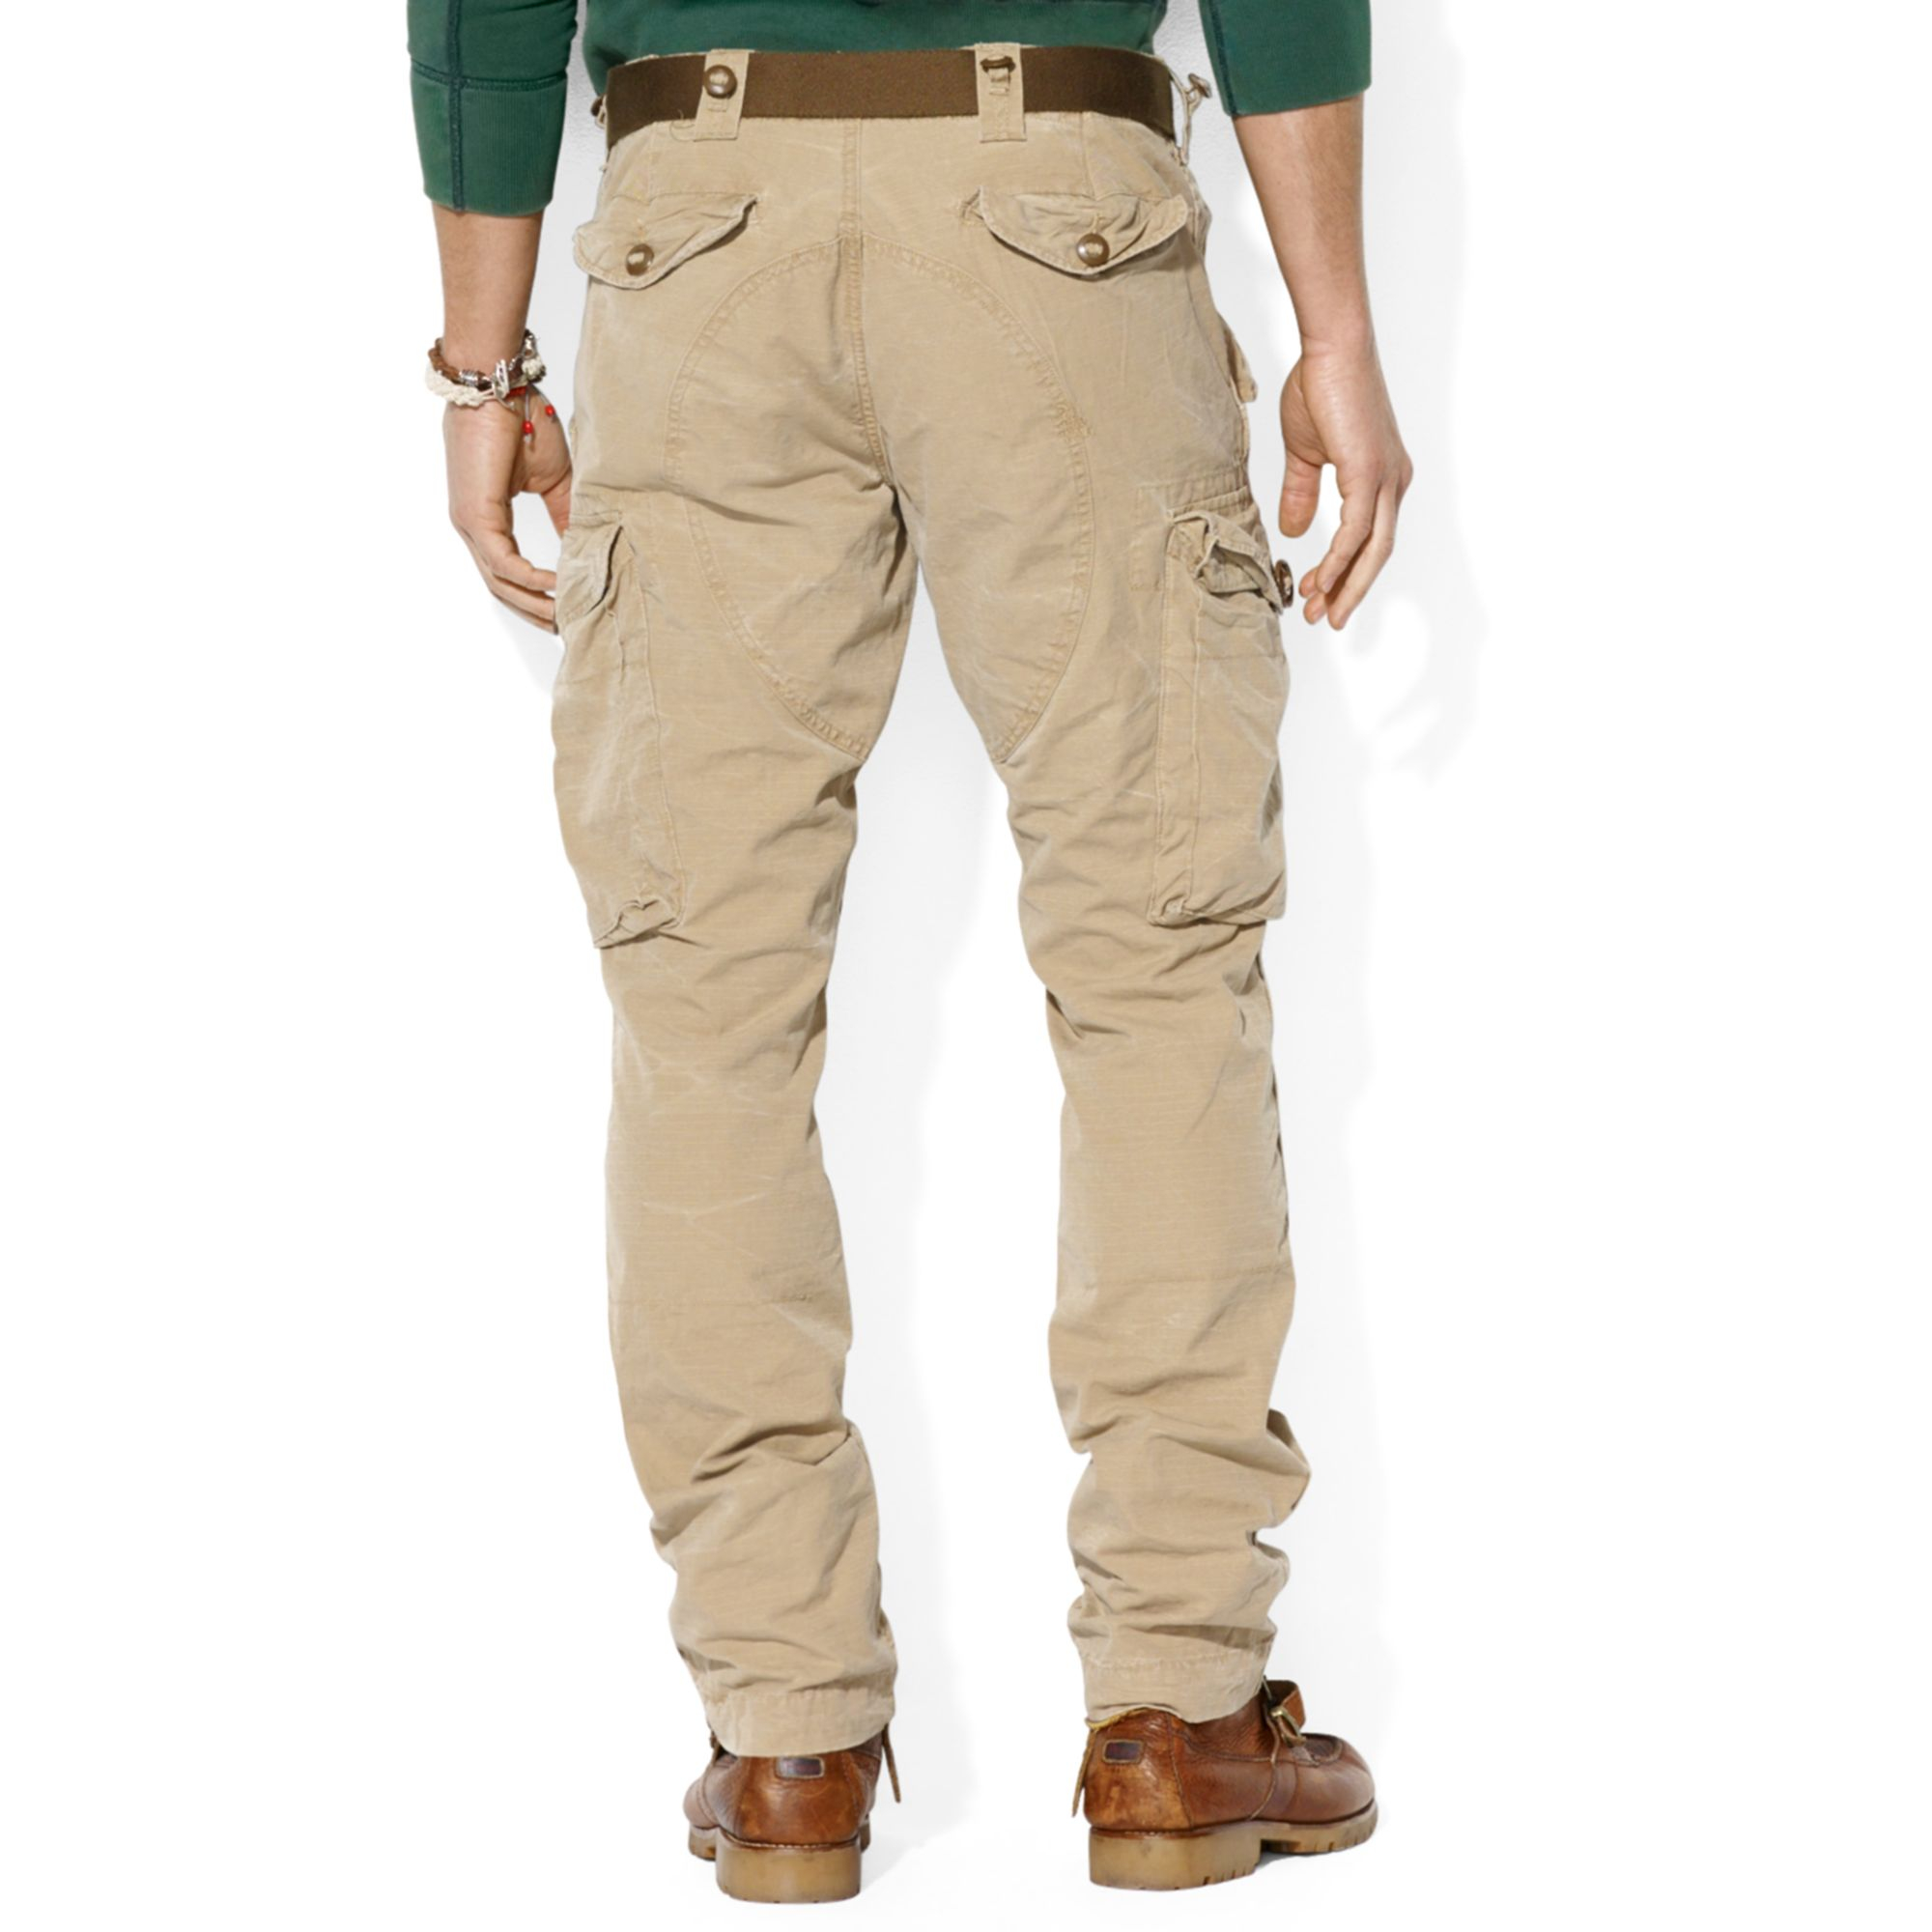 b0e9dcacf Ralph Lauren Polo Straight Fit Canadian Ripstop Cargo Pants in ...